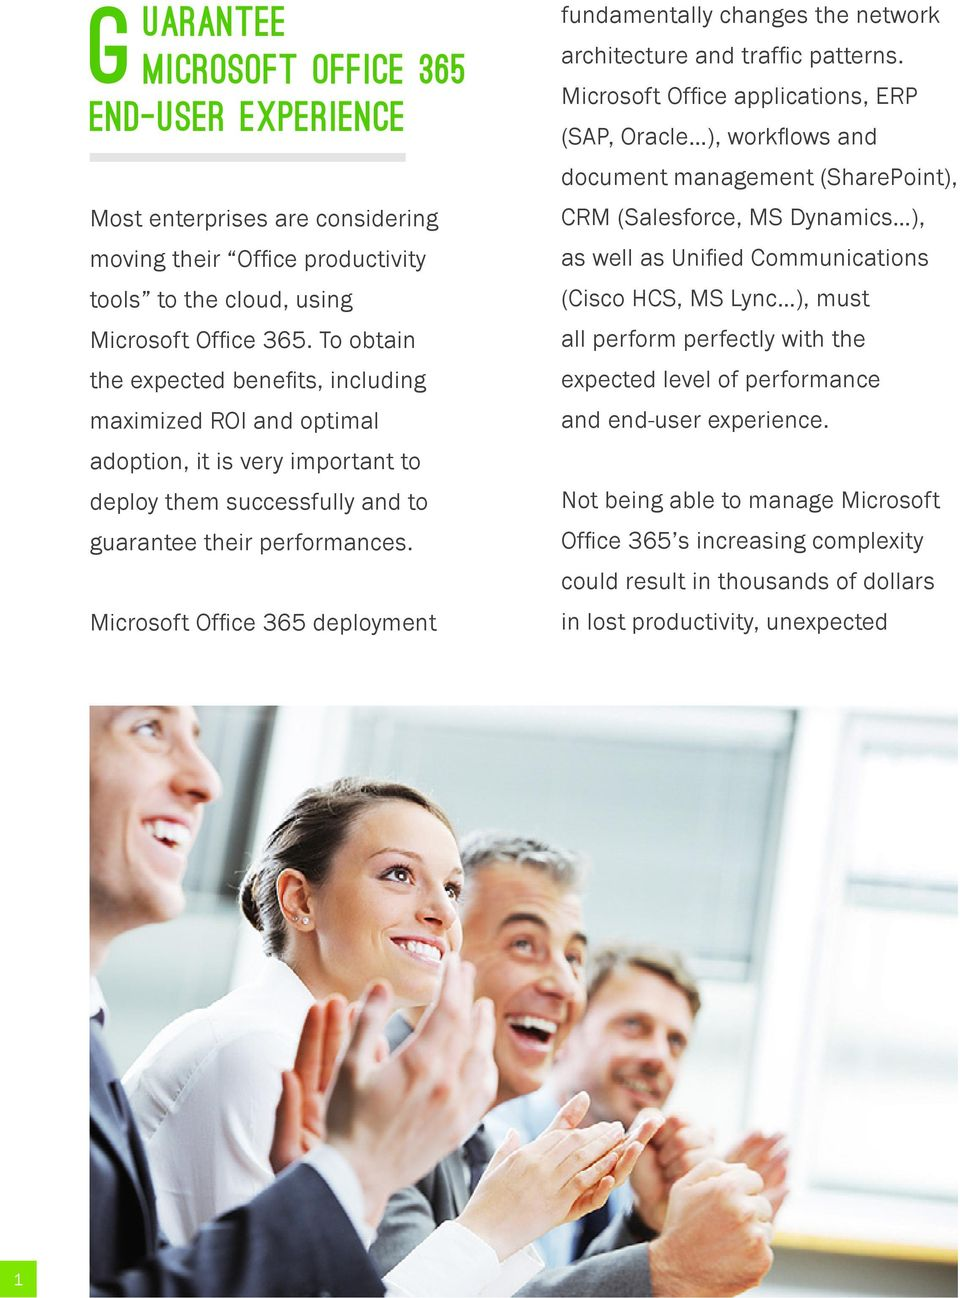 Microsoft Office 365 deployment fundamentally changes the network architecture and traffic patterns.